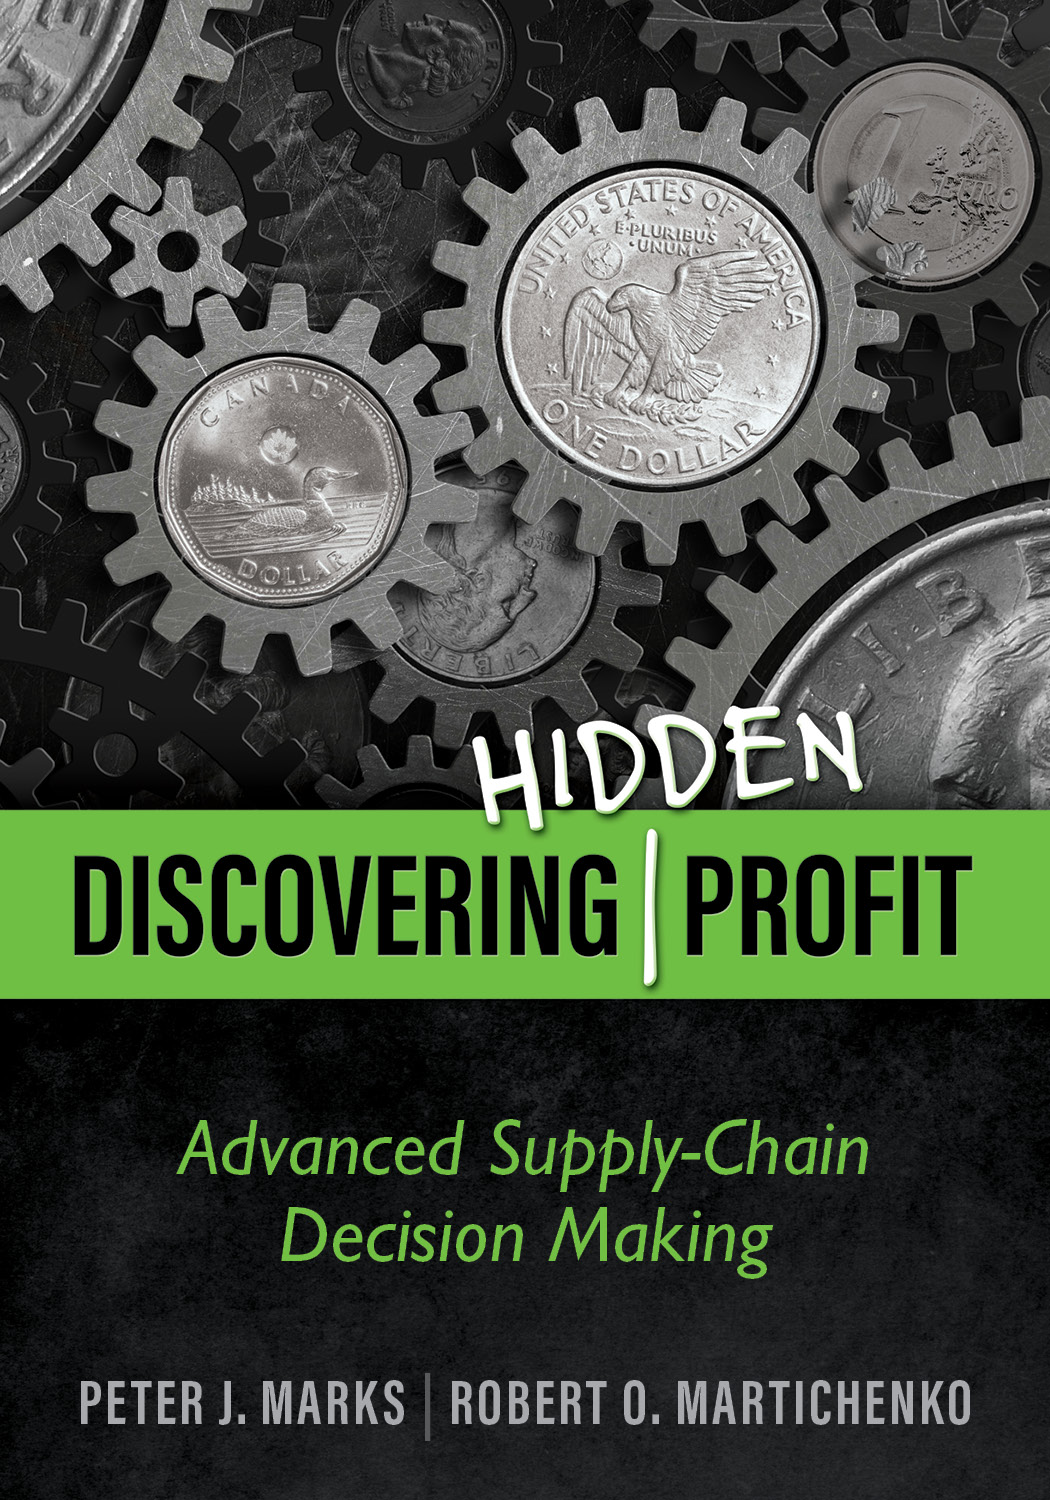 DiscoveringProfit_CoverR9-1.jpg